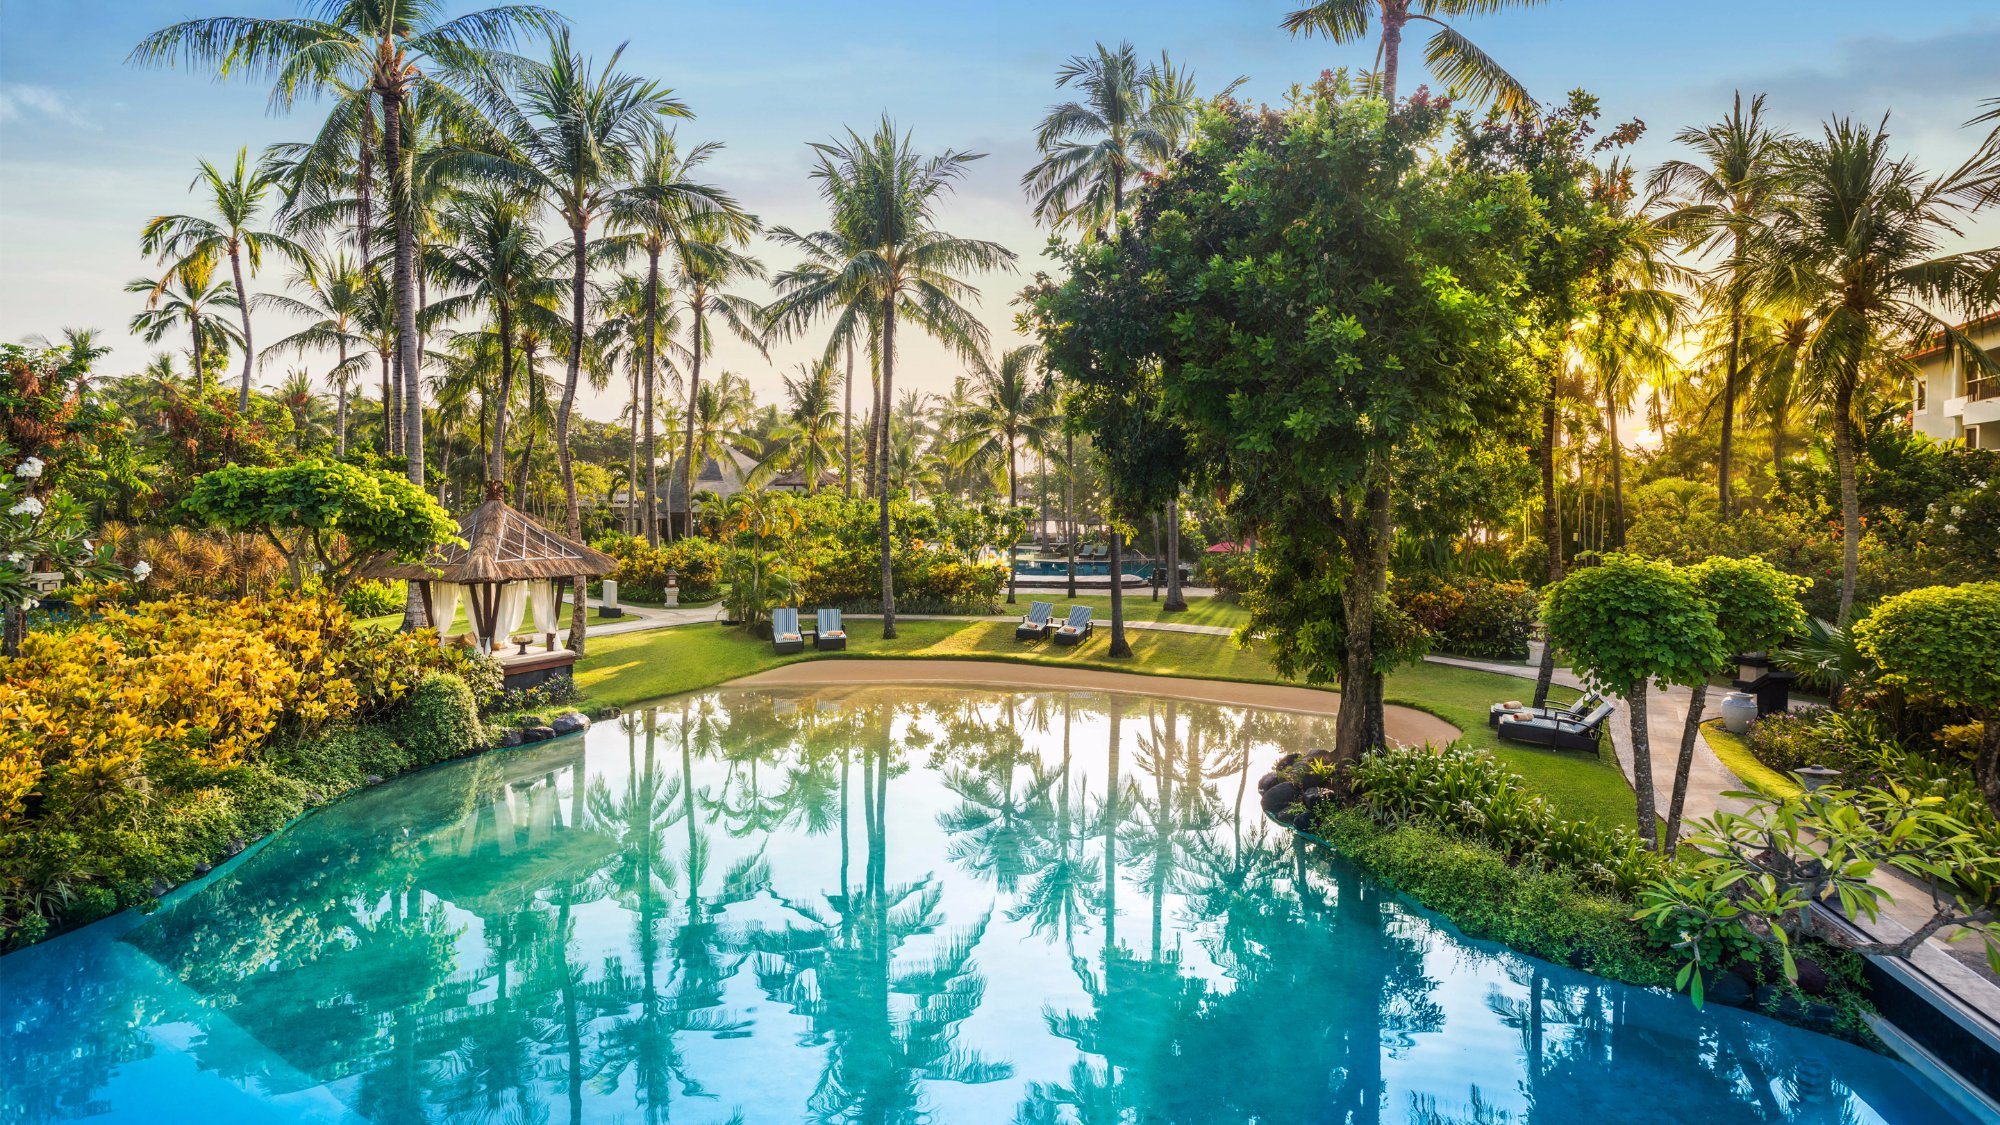 Your Luxury Holidays In Bali Starts Here